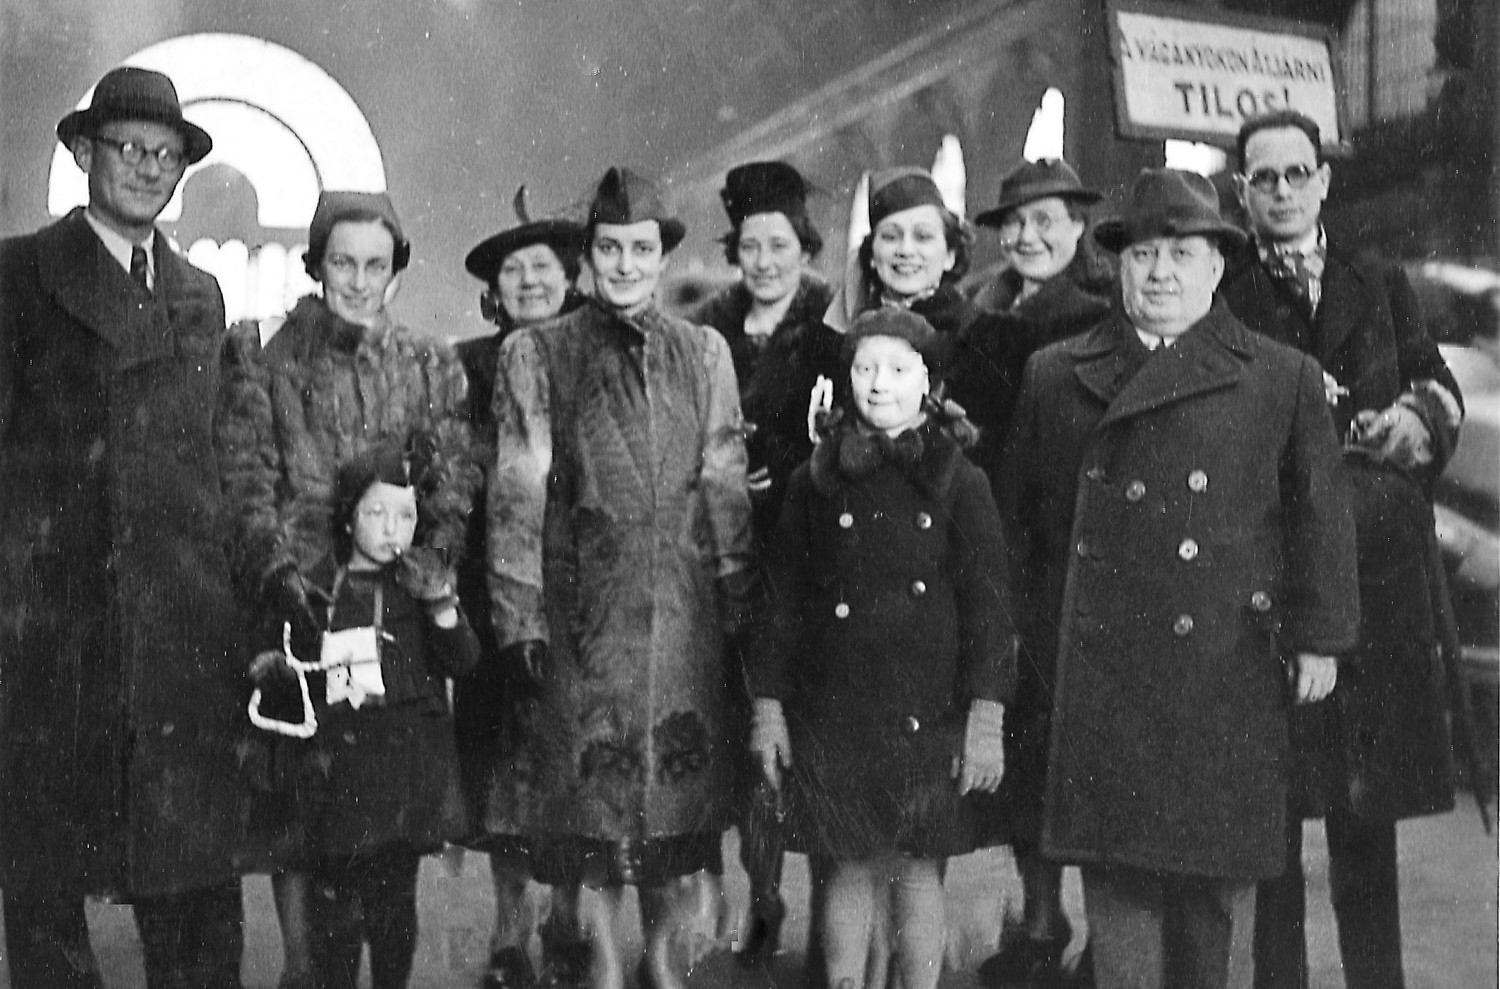 A Jewish family reunited in Budapest in 1943 following the arrival there of family members from Holland.